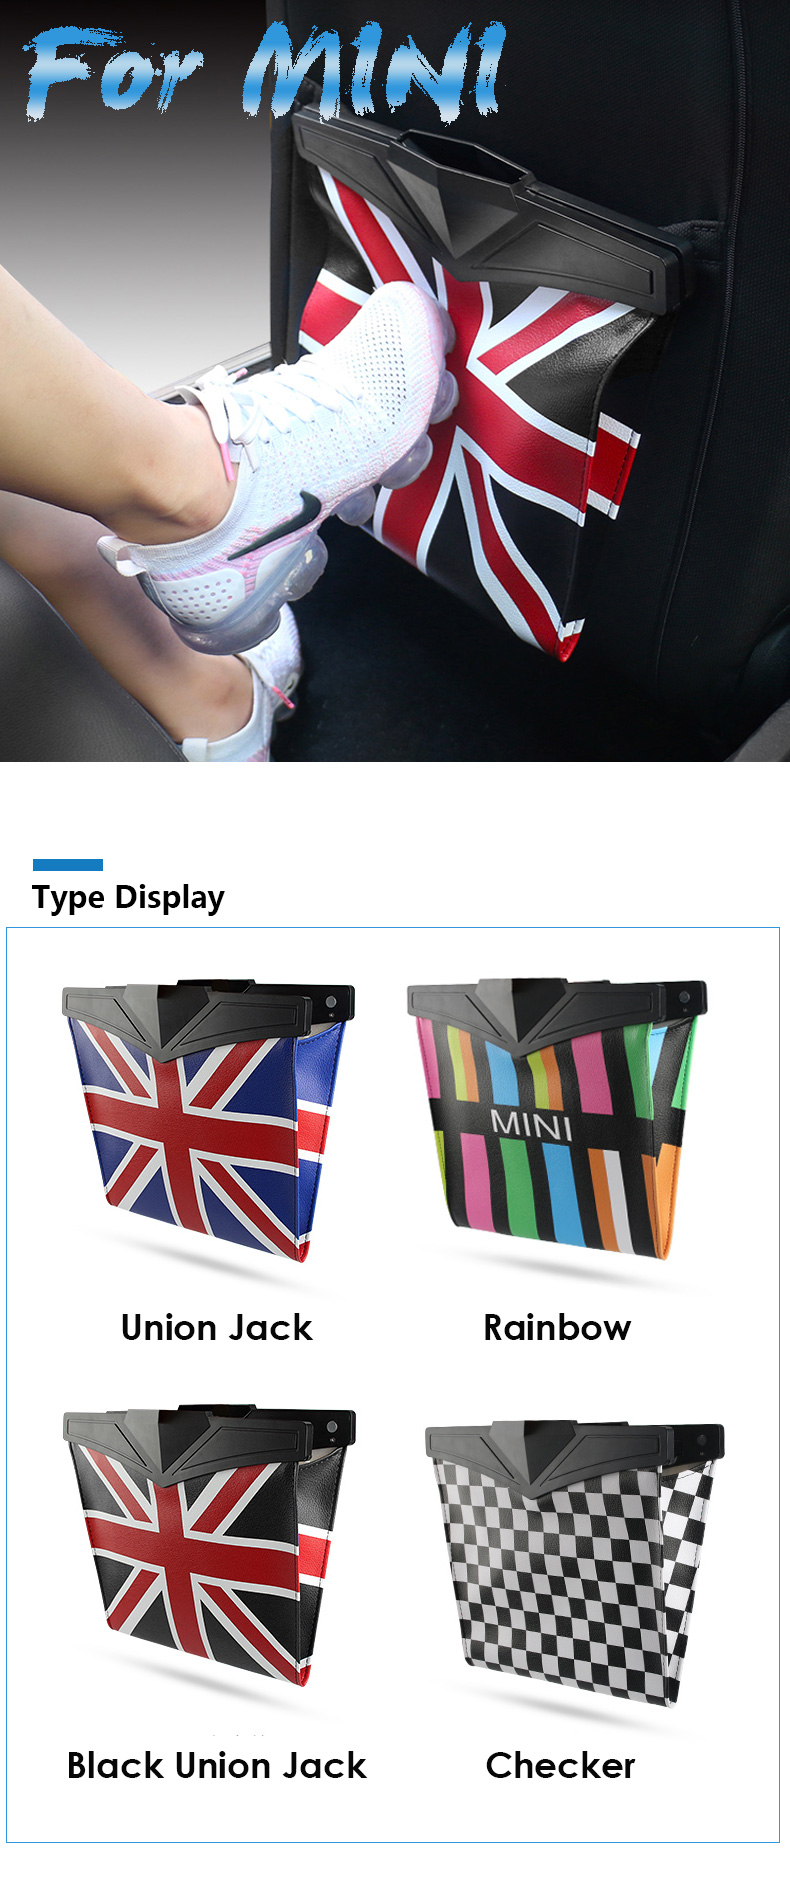 Leather Car Seat Storage Bag Trash Bag Basket for Mini Cooper R55 R56 R57 R58 R59 F54 F55 F56 F57 Countryman R60 F60 (1)